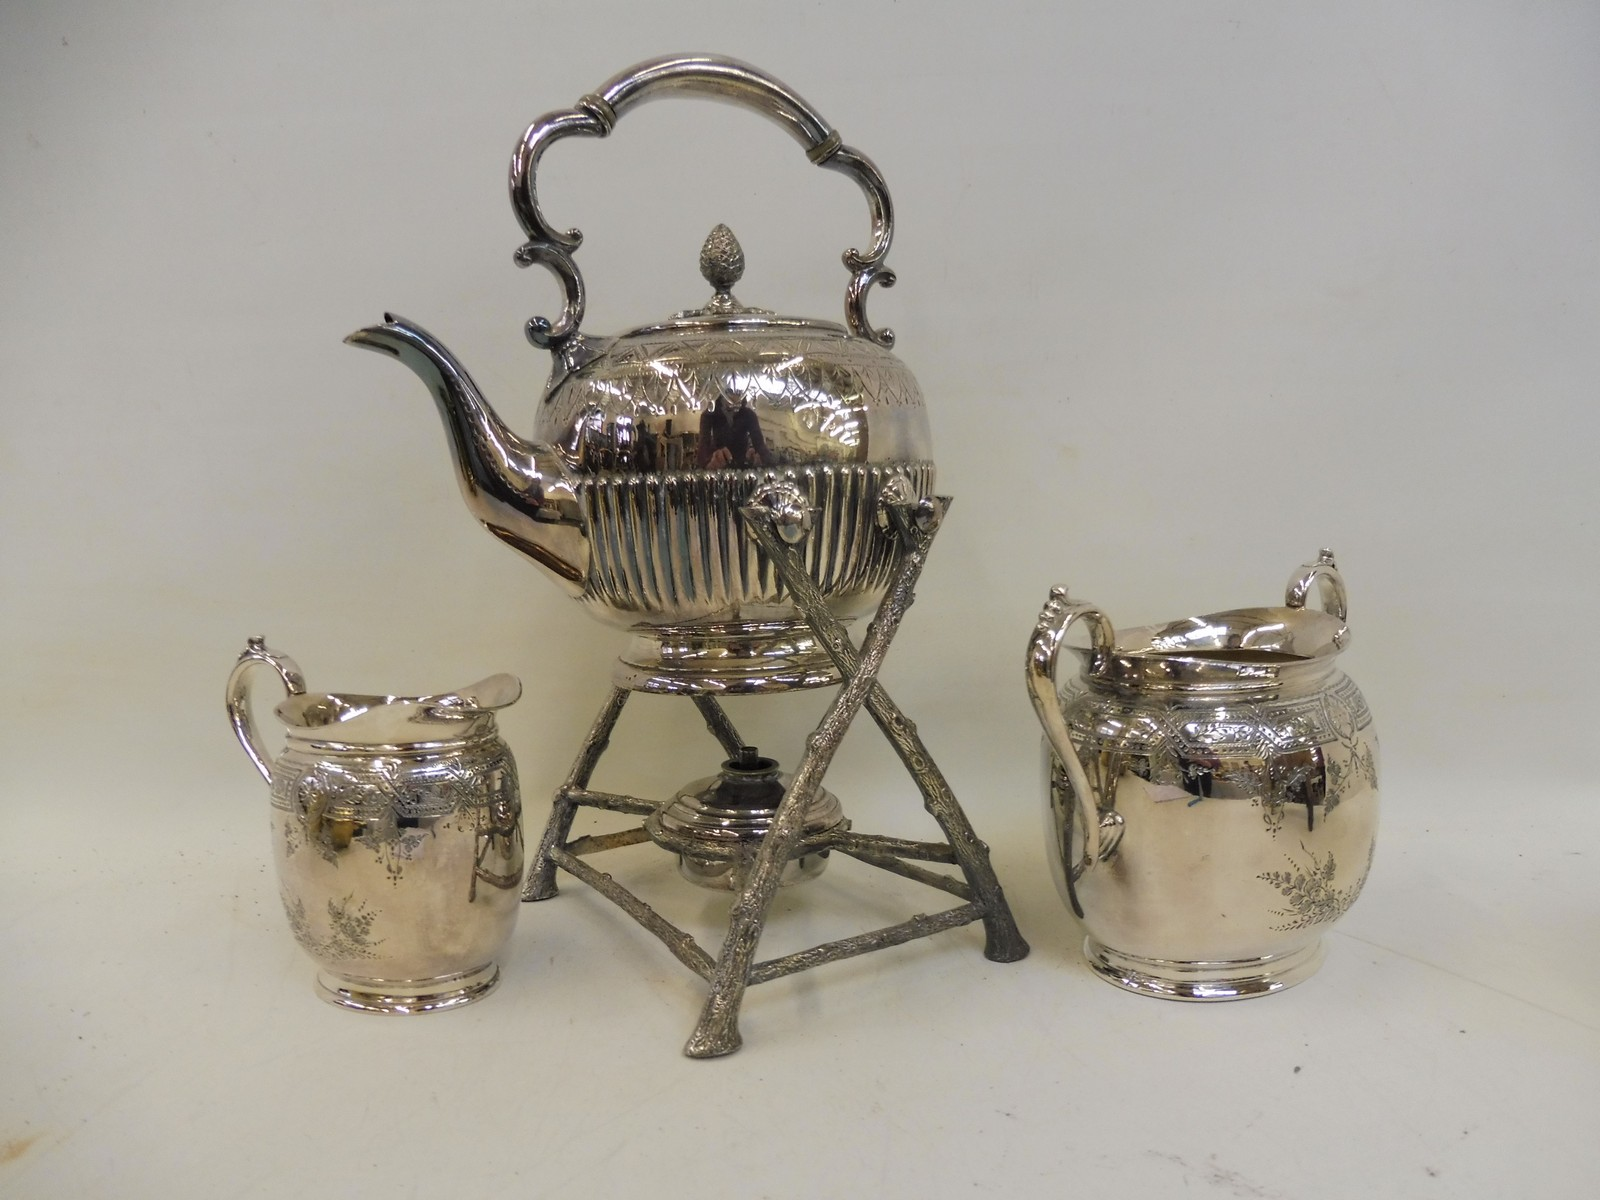 Lot 23 - A late Victorian silver plated spirit kettle on stand, and a silver plated sugar bowl with milk